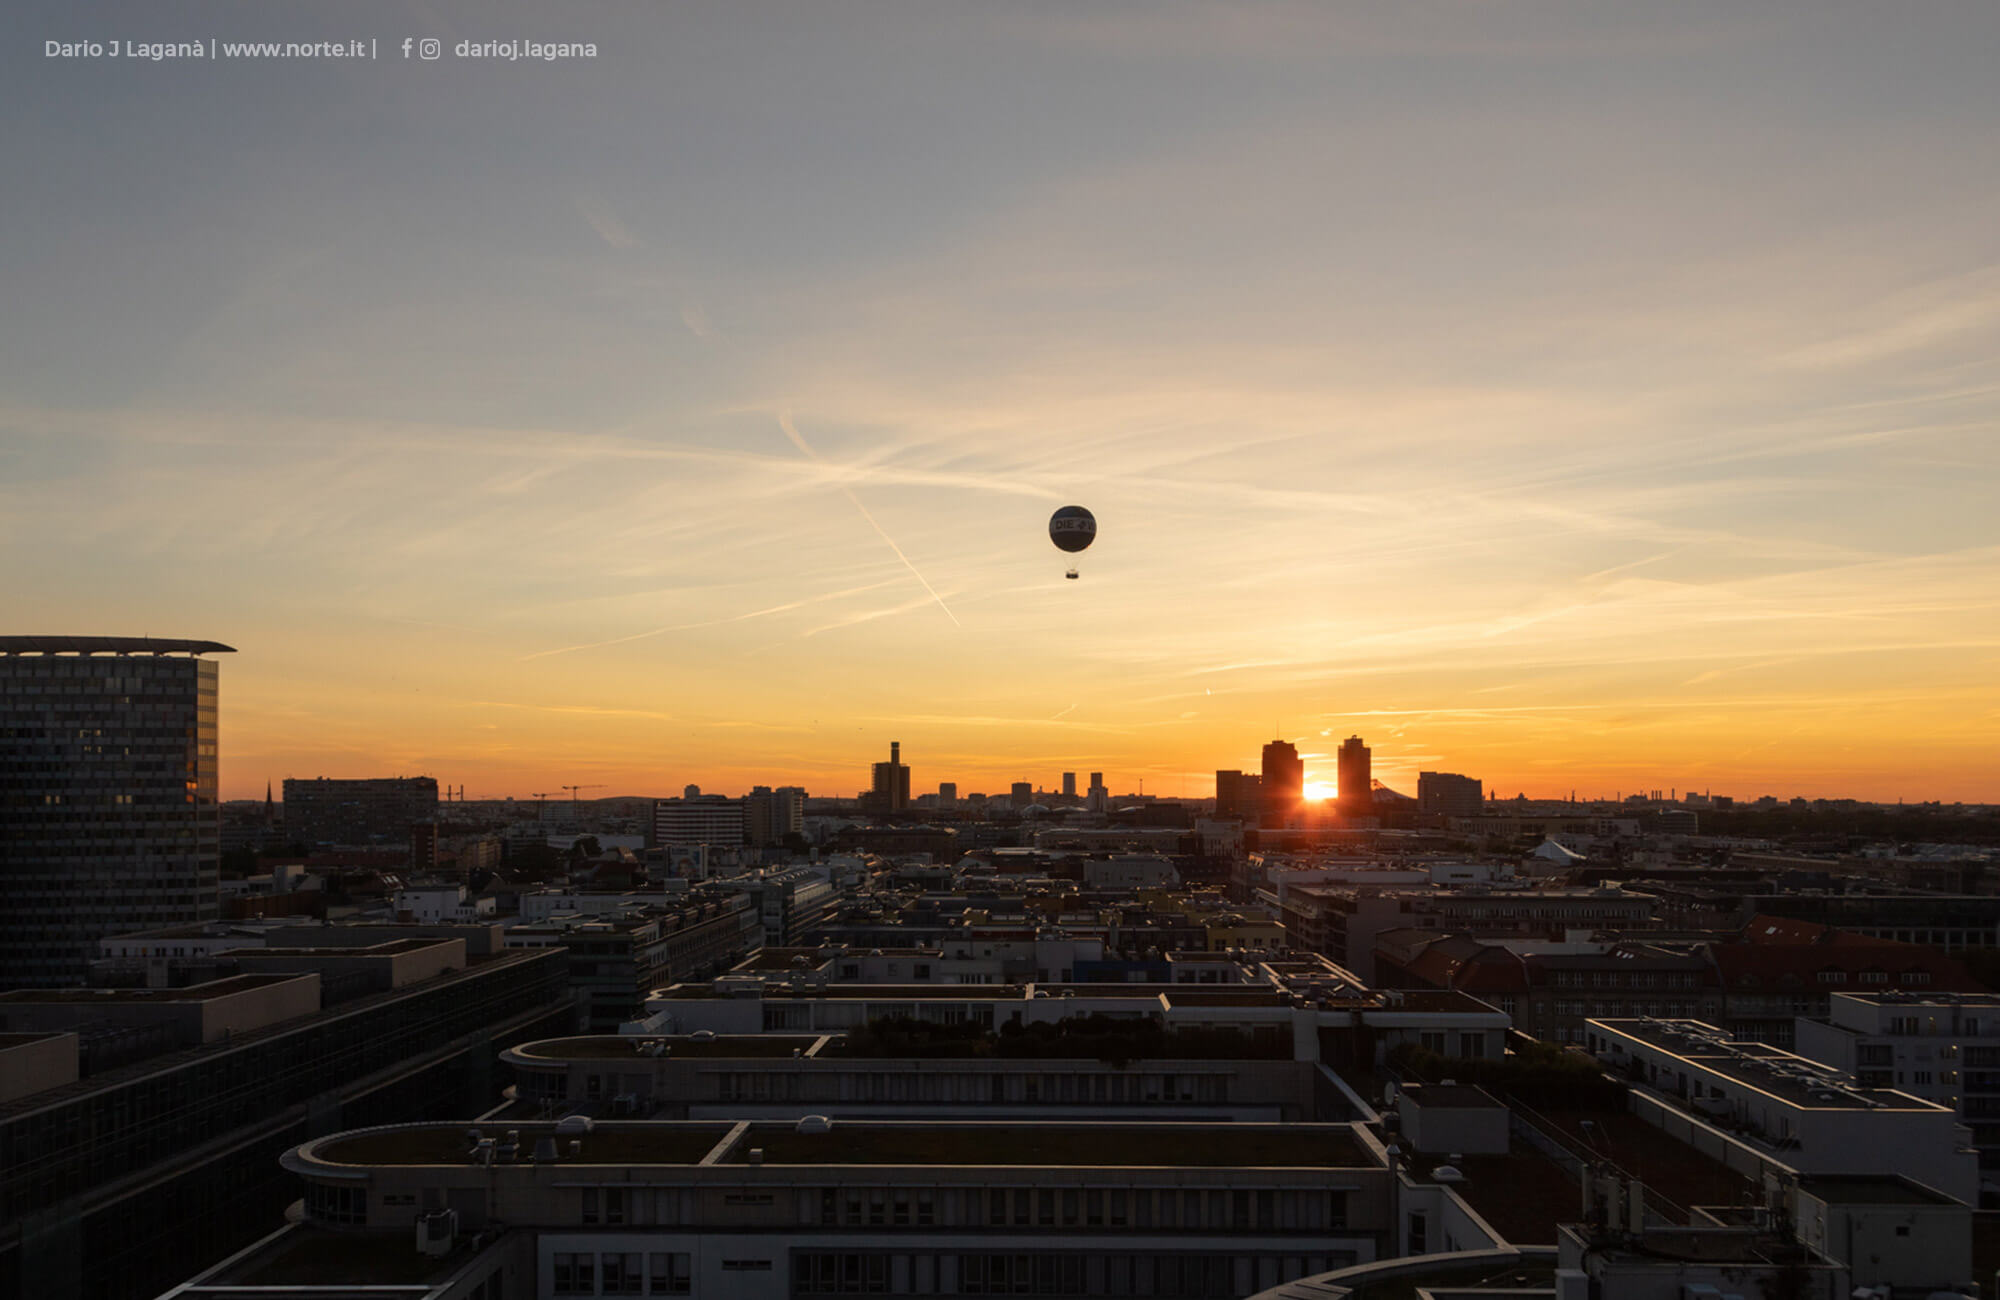 View from the REM roof terrace with hot air balloon before sunset